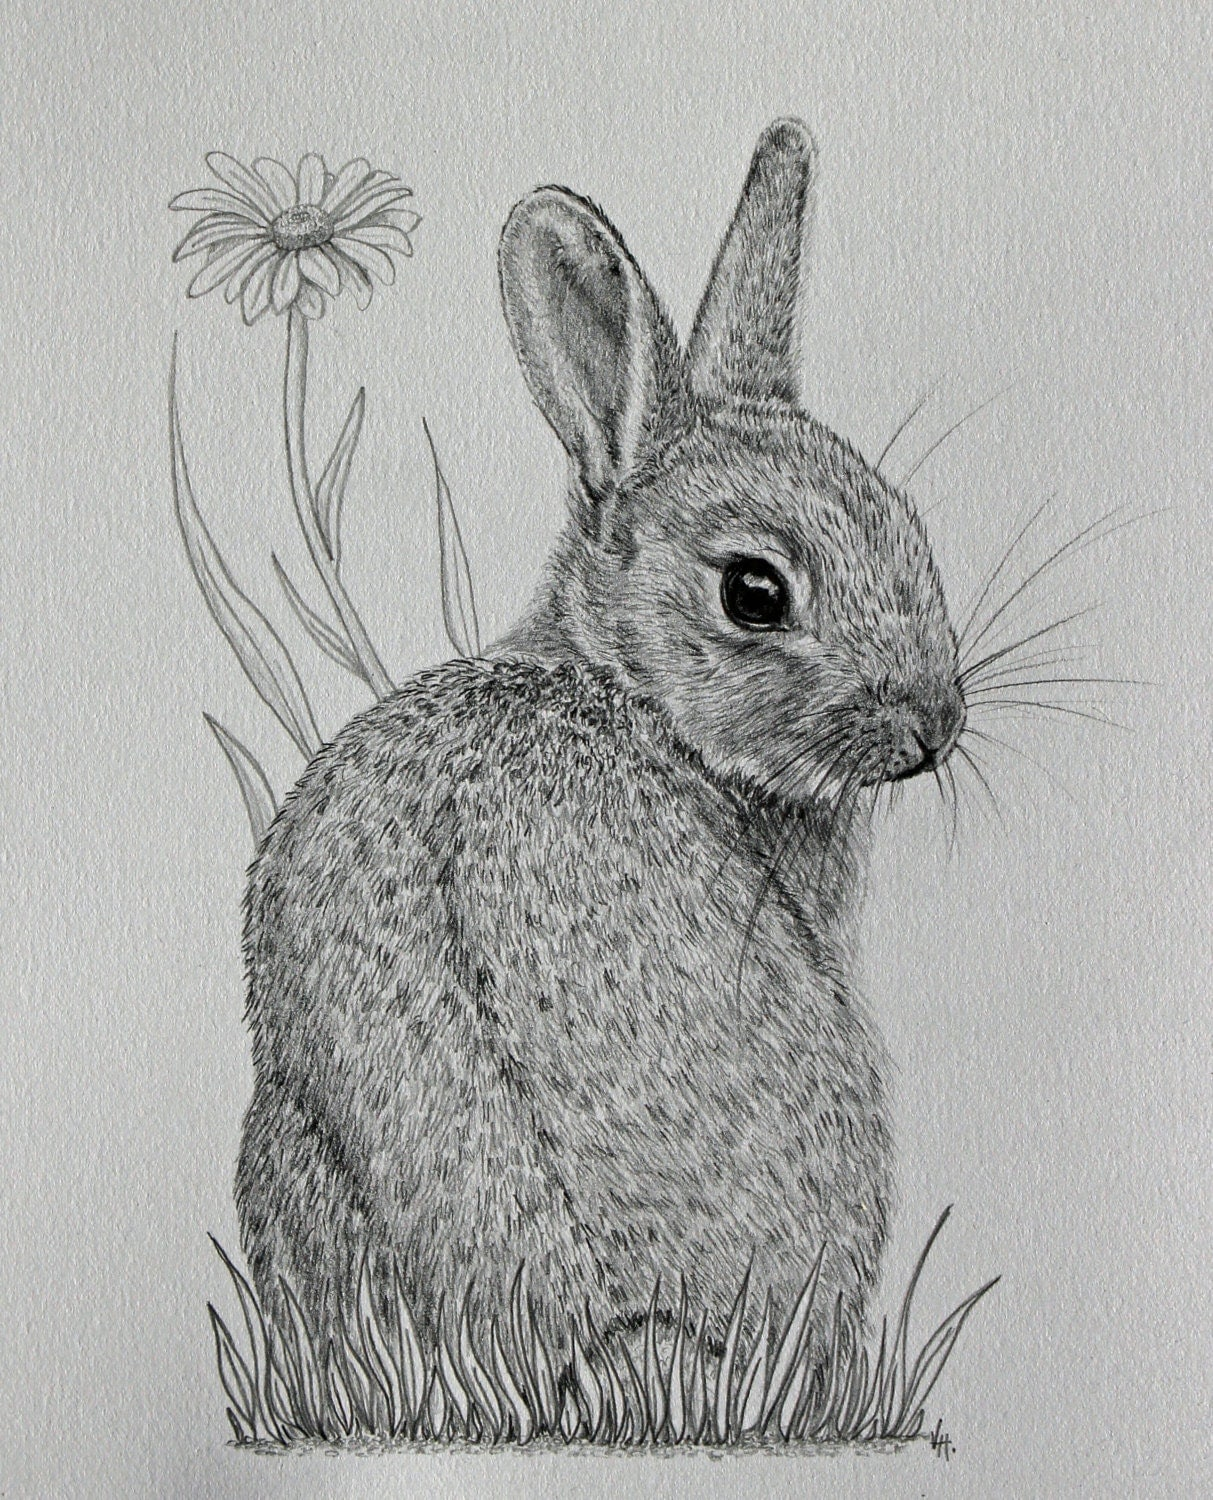 original mounted pencil drawing of baby bunny rabbit with